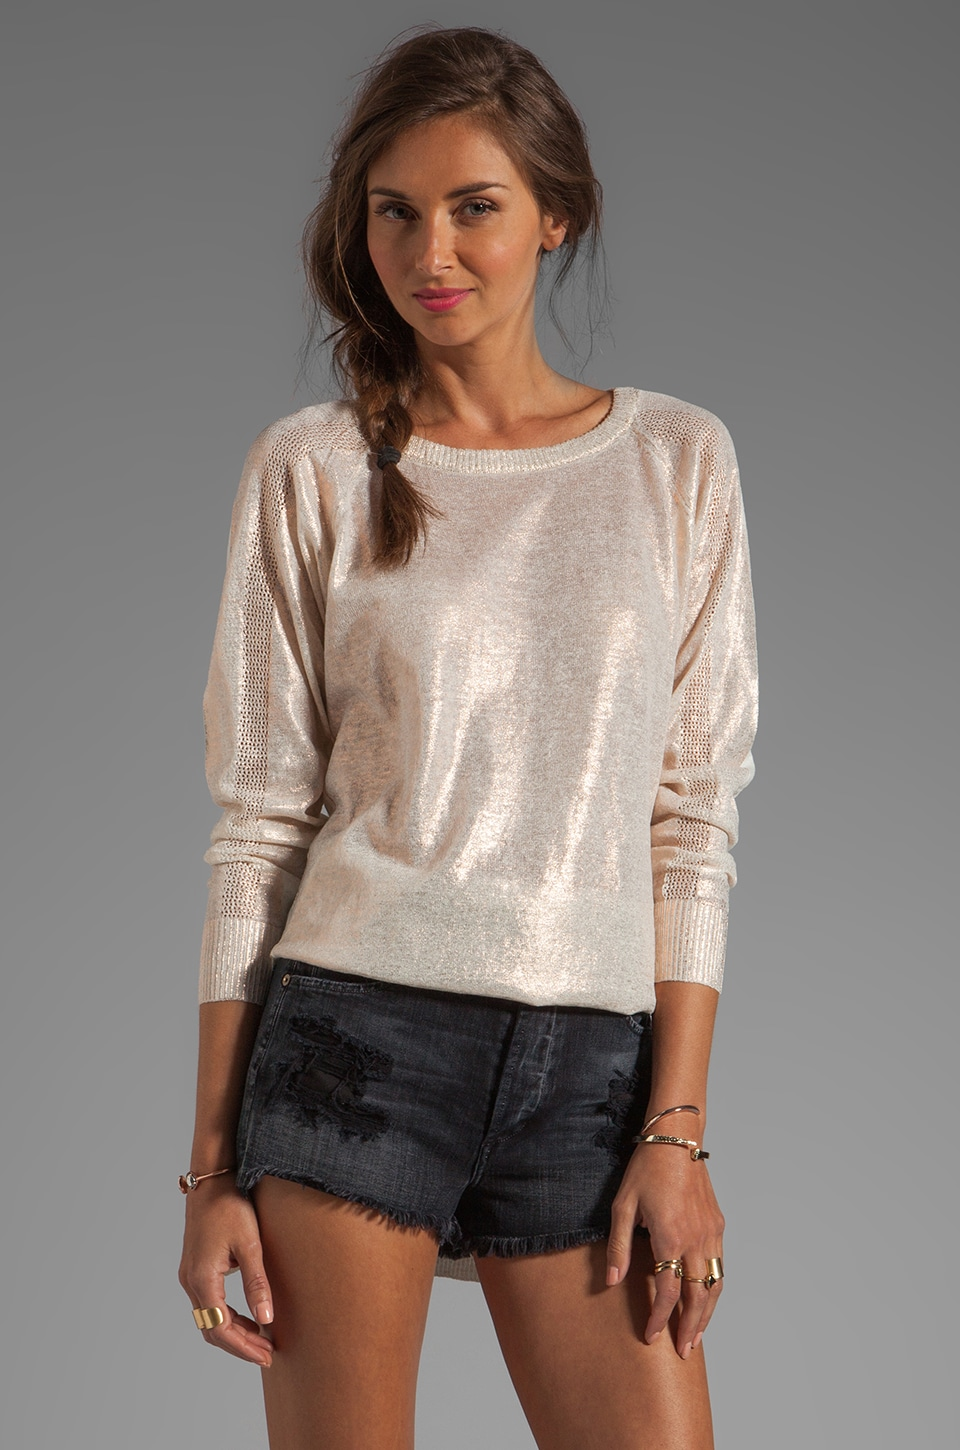 Cynthia Rowley L/S Crewneck Sweater in Gold